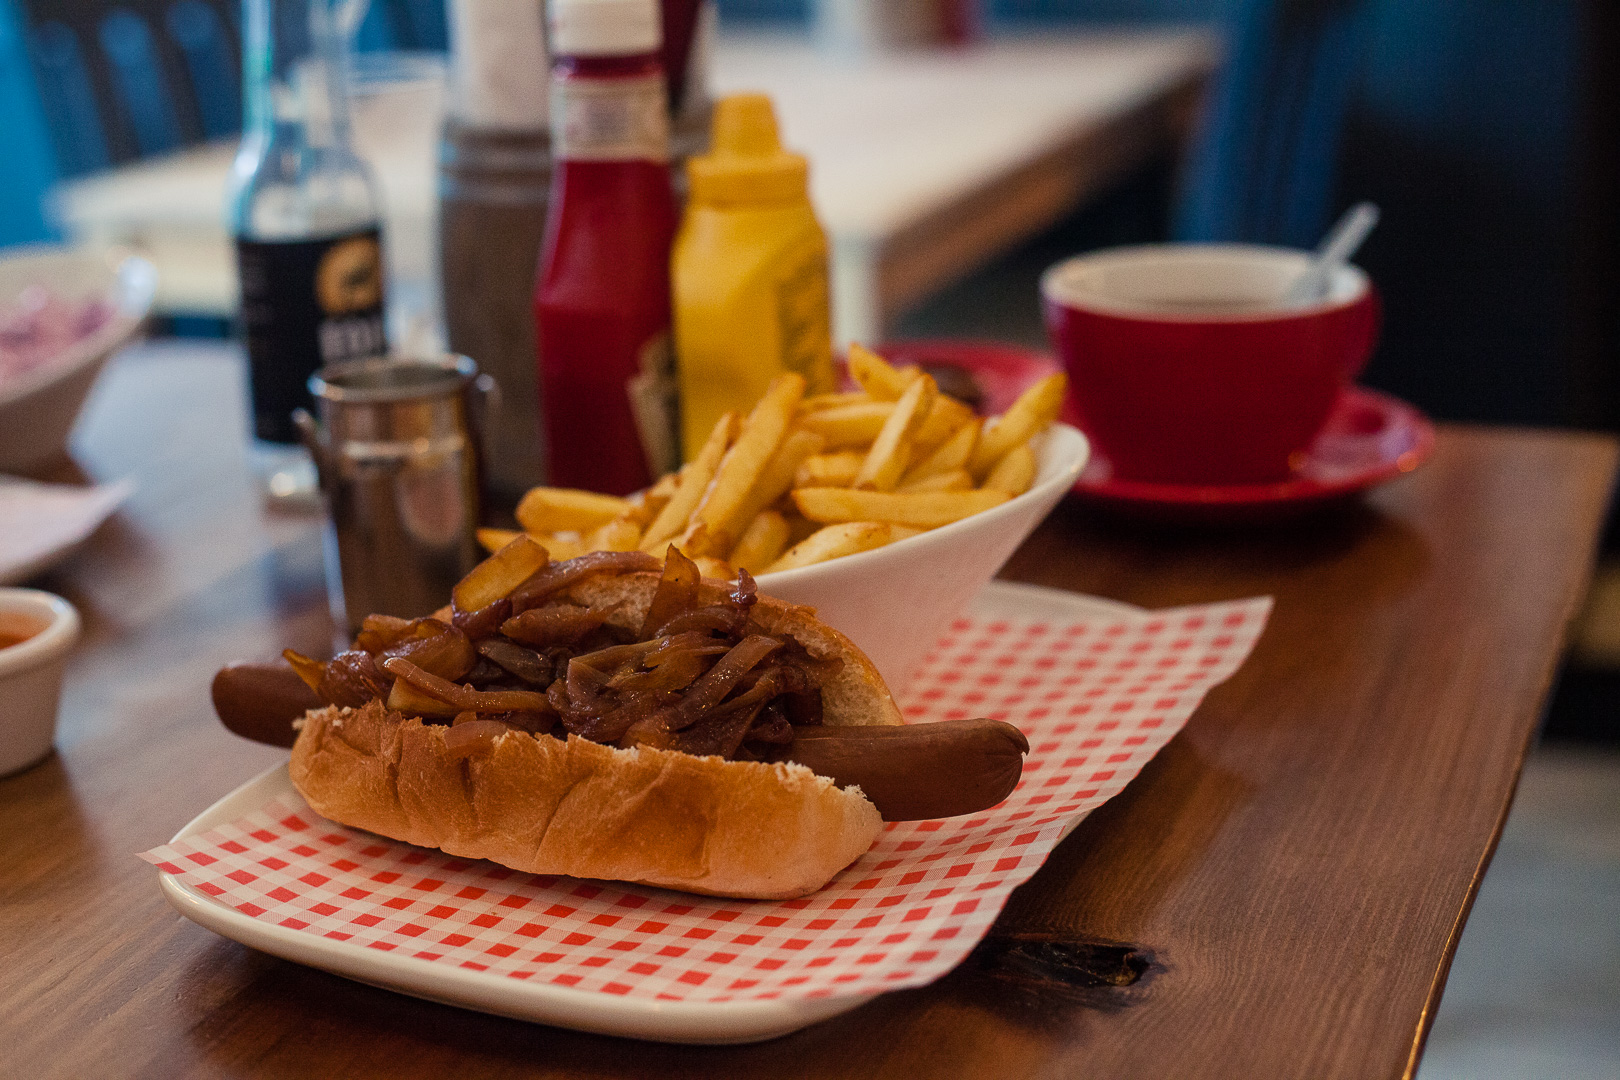 Surf Dogs Glasgow is a new hotdog joint in the Southside of Glasgow. Decorated with an eclectic mix of Star Wars memorabilia, skate boards and film quotes, the restaurant dishes up a variety of hot dogs, many of which can be easily made vegan!